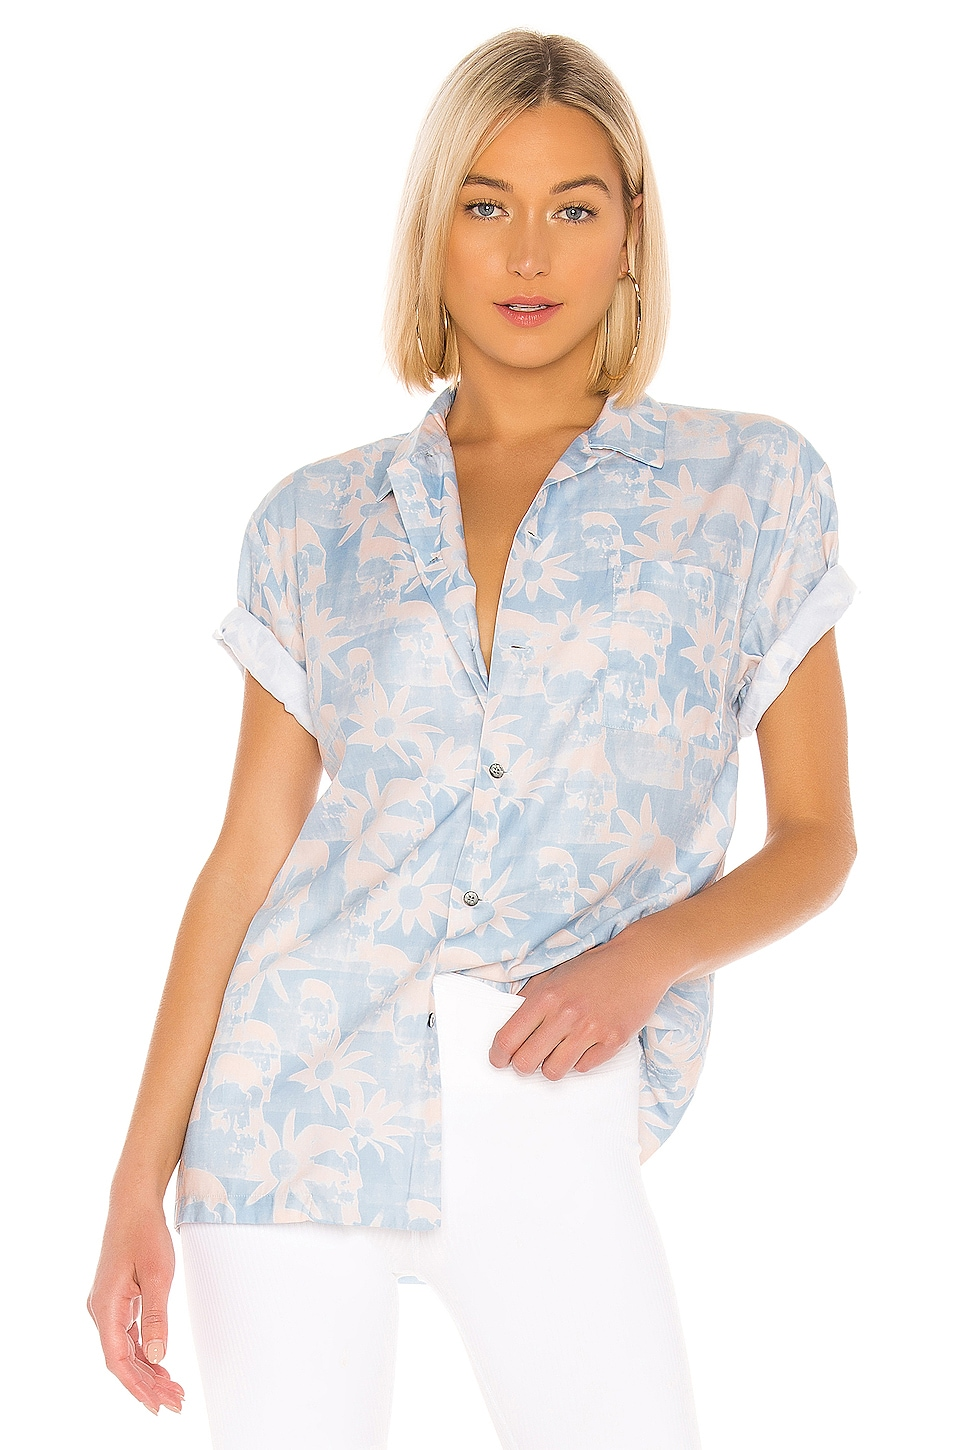 DOUBLE RAINBOUU Hawaiian Shirt in Paradise City Pink